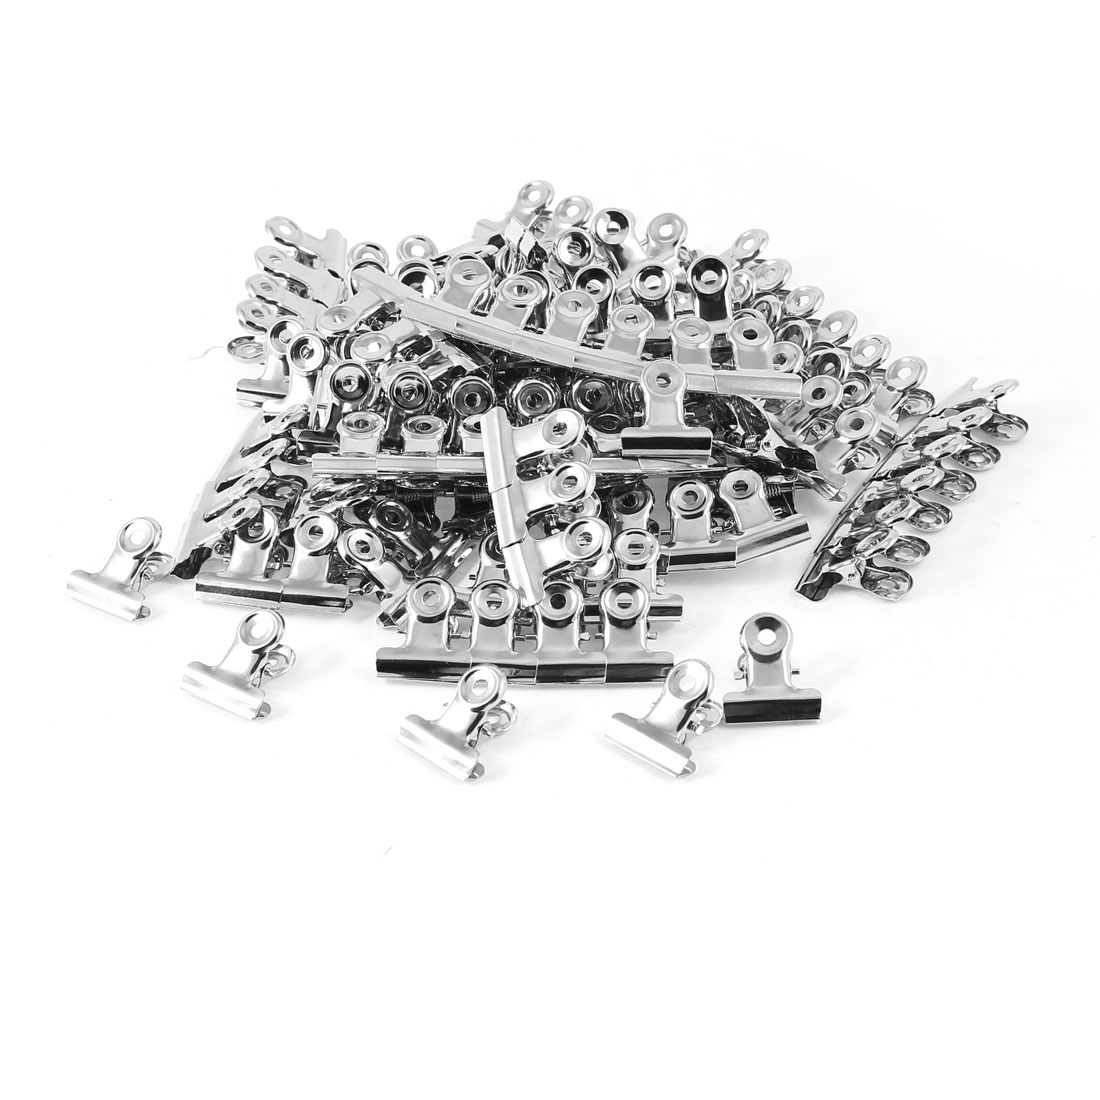 Silver Tone Metal Paper Clips Office Stationery Metal Clamps Tool 50 Pcs